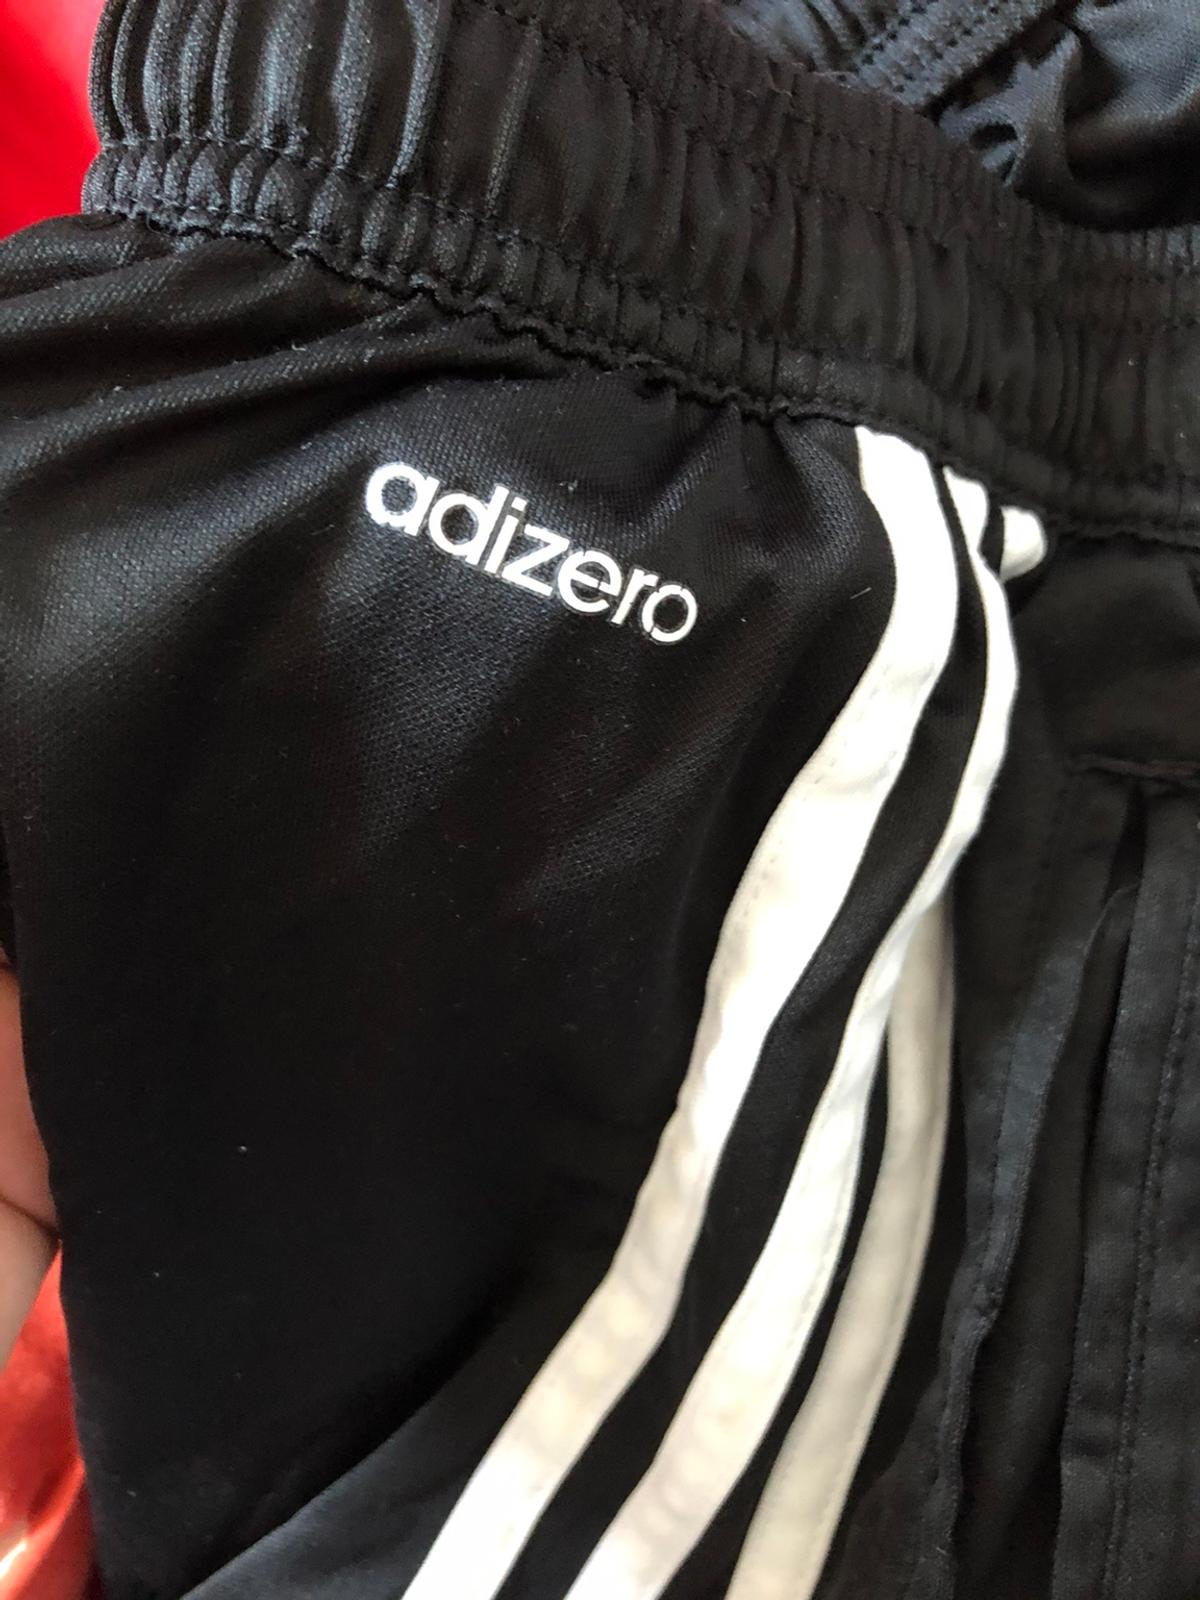 Brentford fc training black football shorts 2 pockets Size S fits bigger  Euros / offers accepted London meet available Please PM before purchase